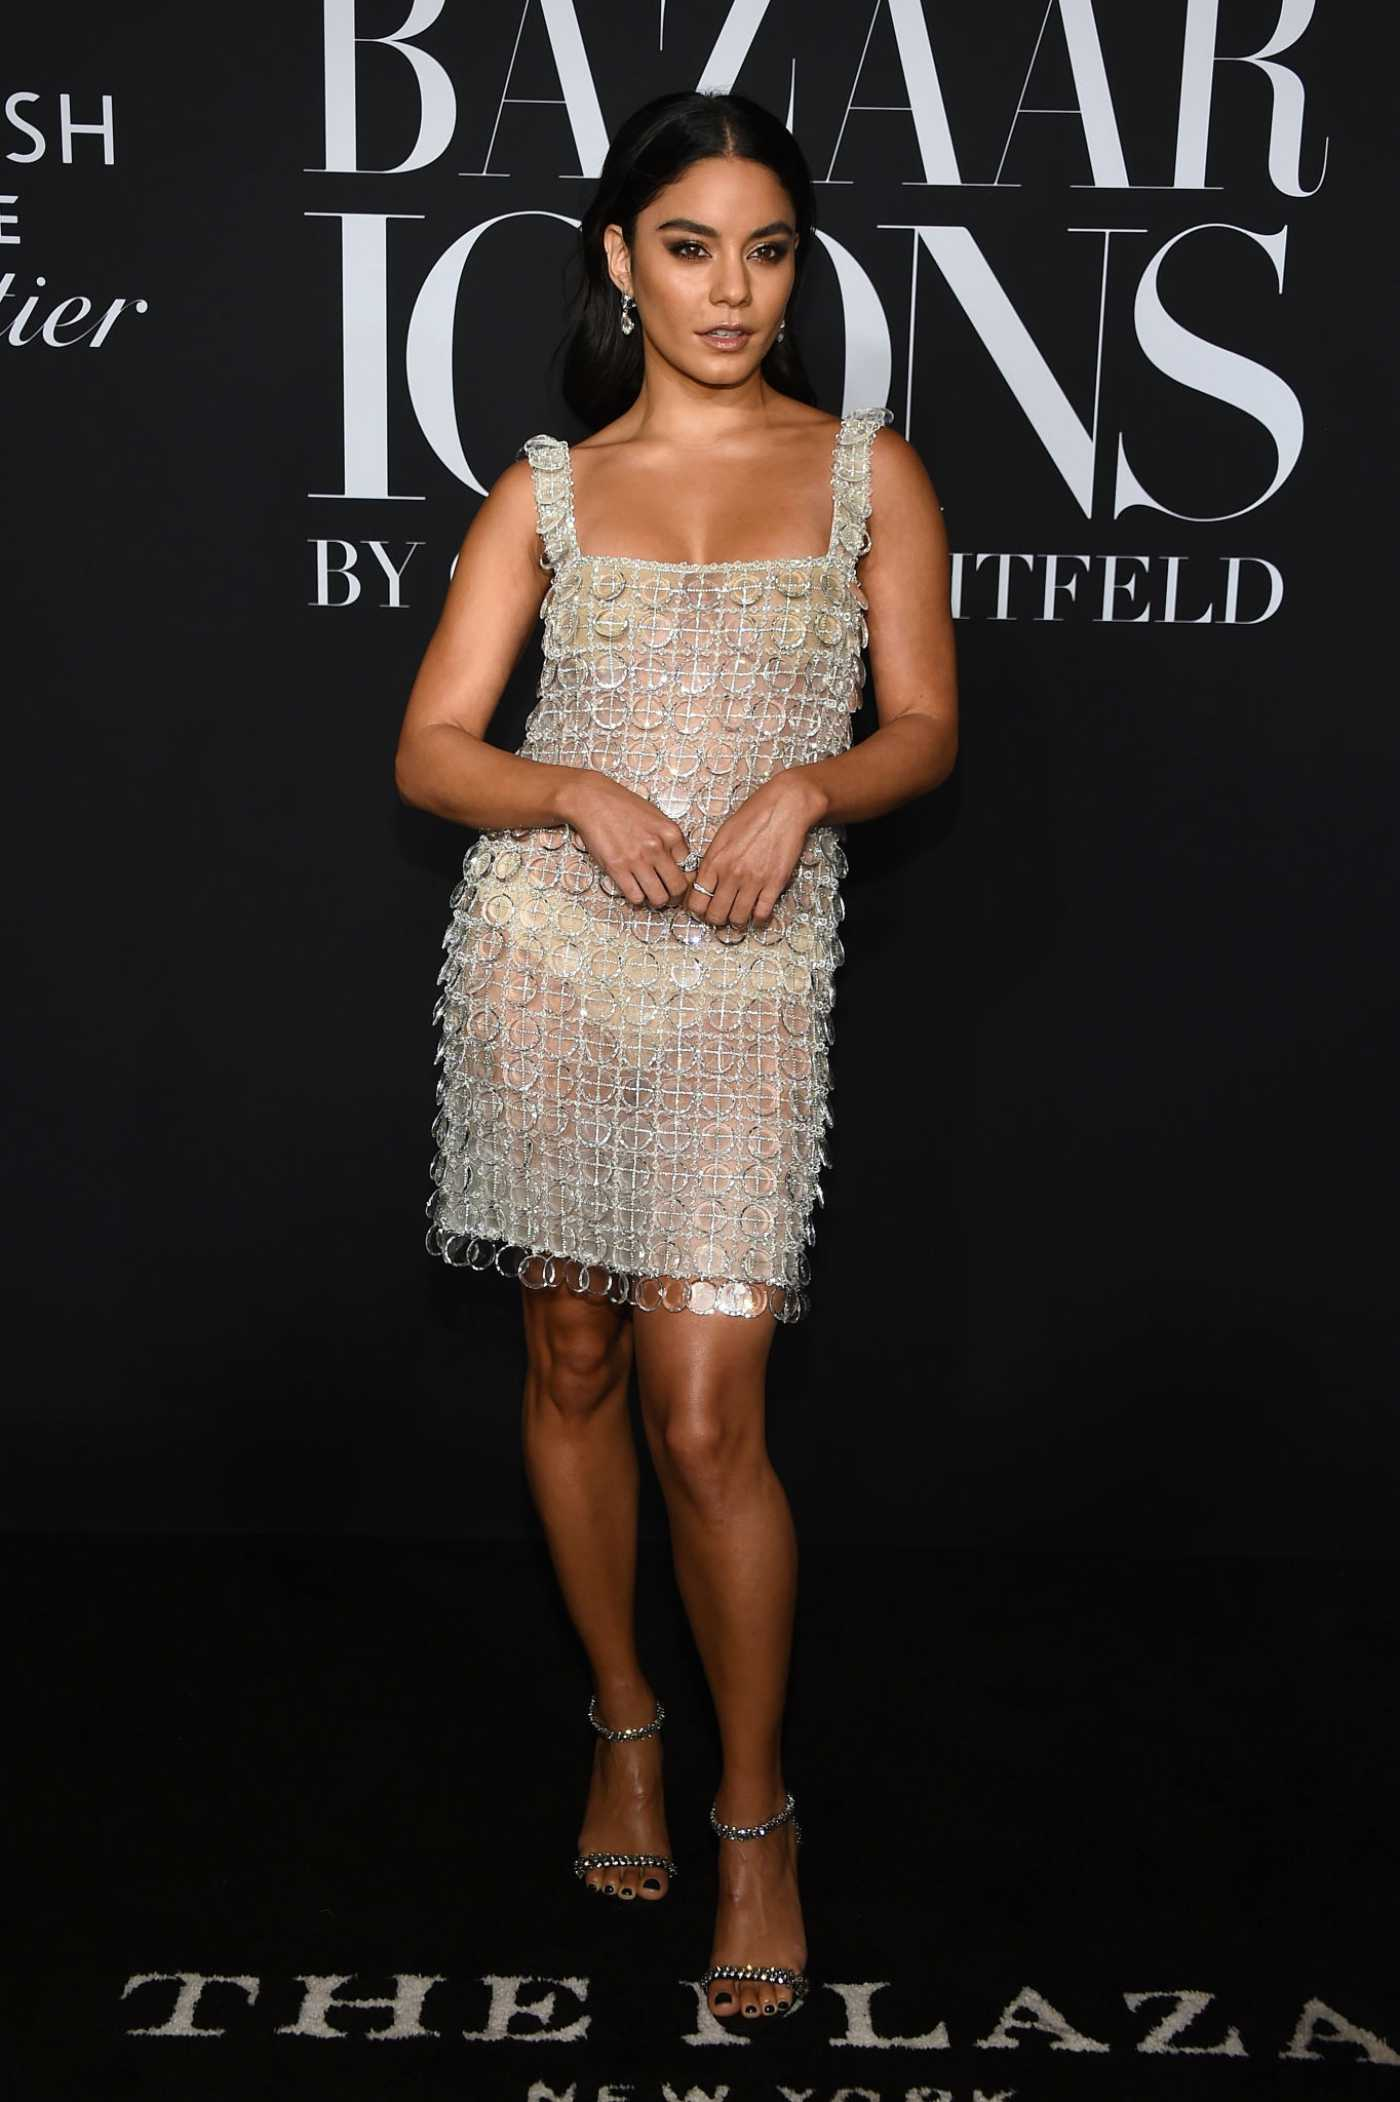 Vanessa Hudgens Attends Harper's Bazaar Icons Party in New York 09/06/2019